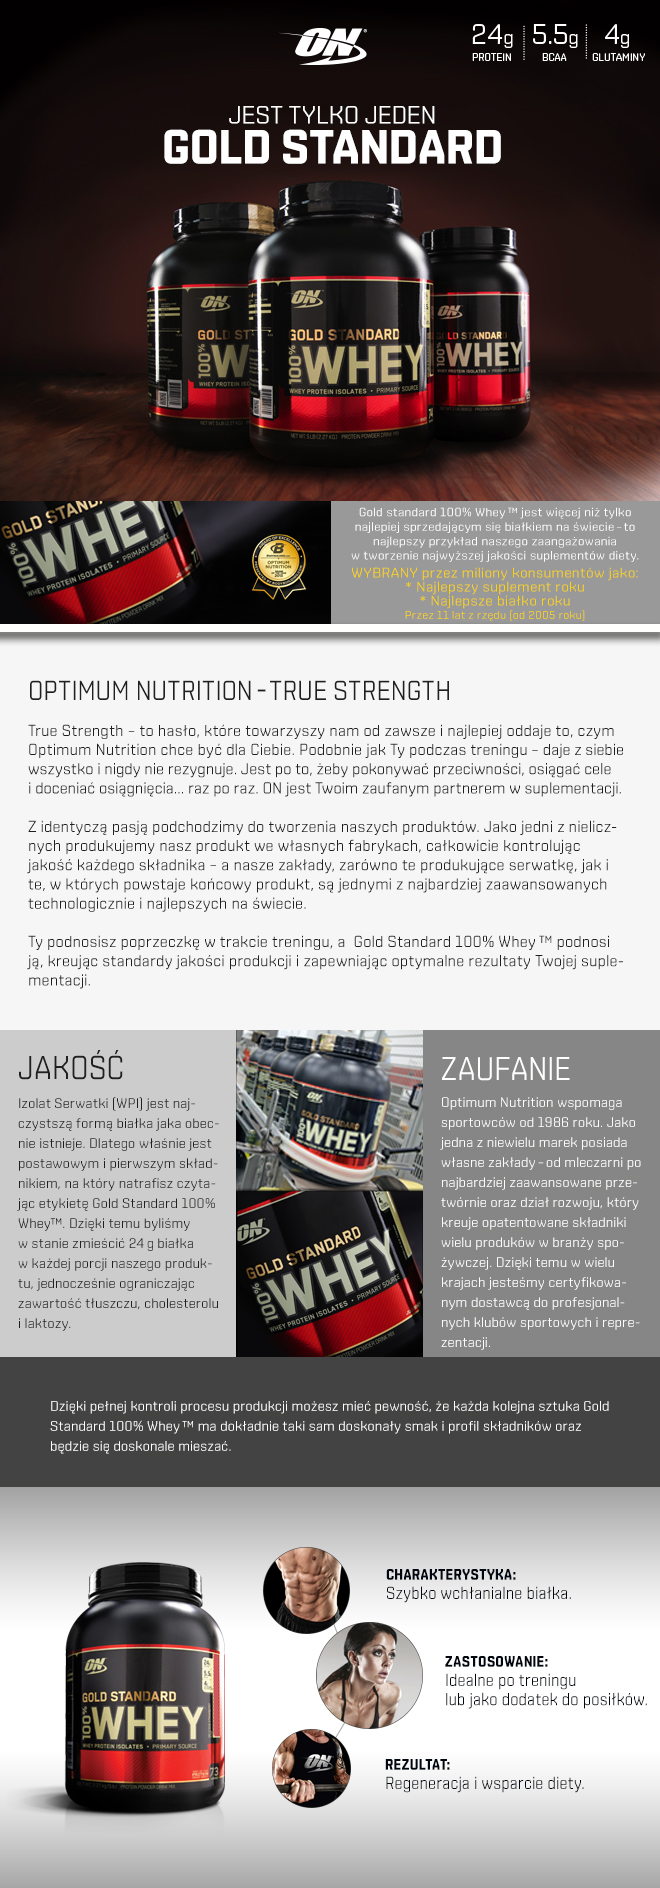 https://image.ibb.co/fY15Tn/strona_gold_standard_whey.jpg